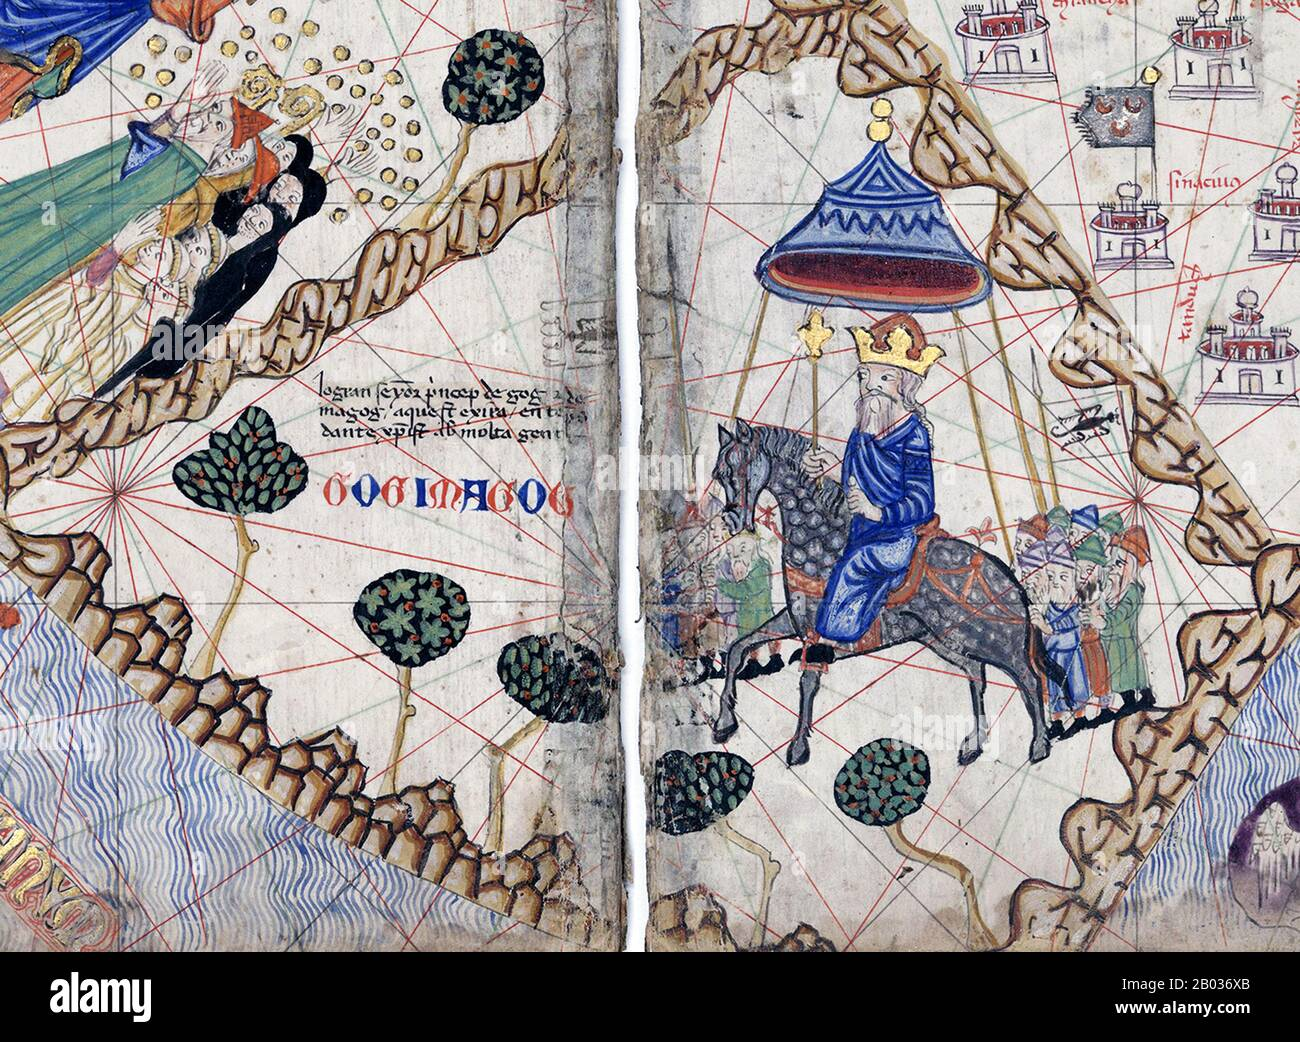 The Catalan Atlas (1375) is the most important Catalan map of the medieval period. It was produced by the Majorcan cartographic school and is attributed to Cresques Abraham, a Jewish book illuminator who was self-described as being a master of the maps of the world as well as compasses. It has been in the royal library of France (now the Bibliotheque nationale de France) since the late 14th century.  The 1st century Jewish historian Josephus identified the Gog and Magog people as Scythians, horse-riding barbarians from around the Don and the Sea of Azov. Josephus recounts the tradition that Go Stock Photo